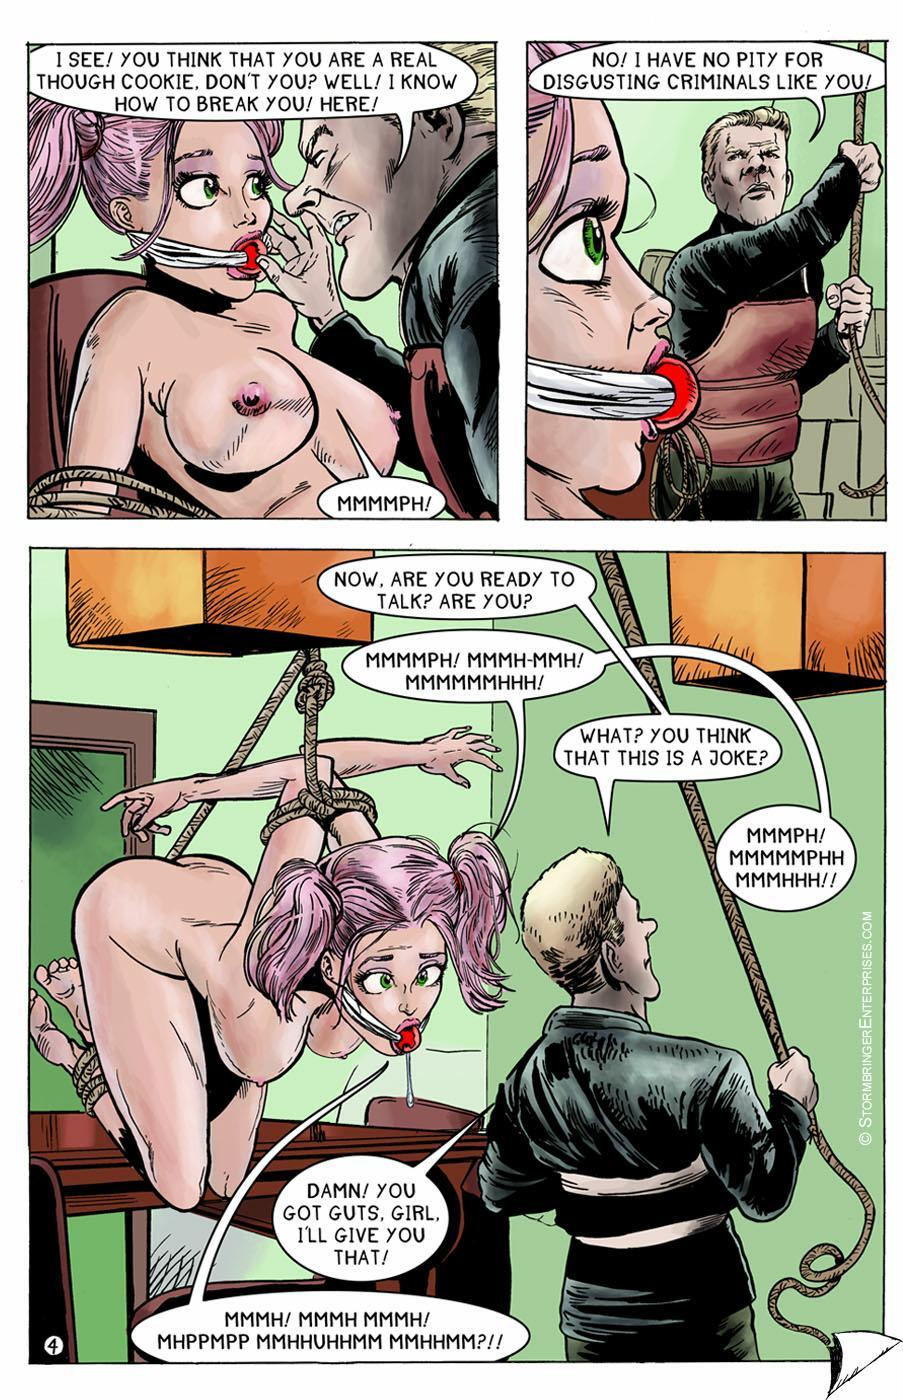 Erotic Adventures of Candice 01-18106 free sex comic